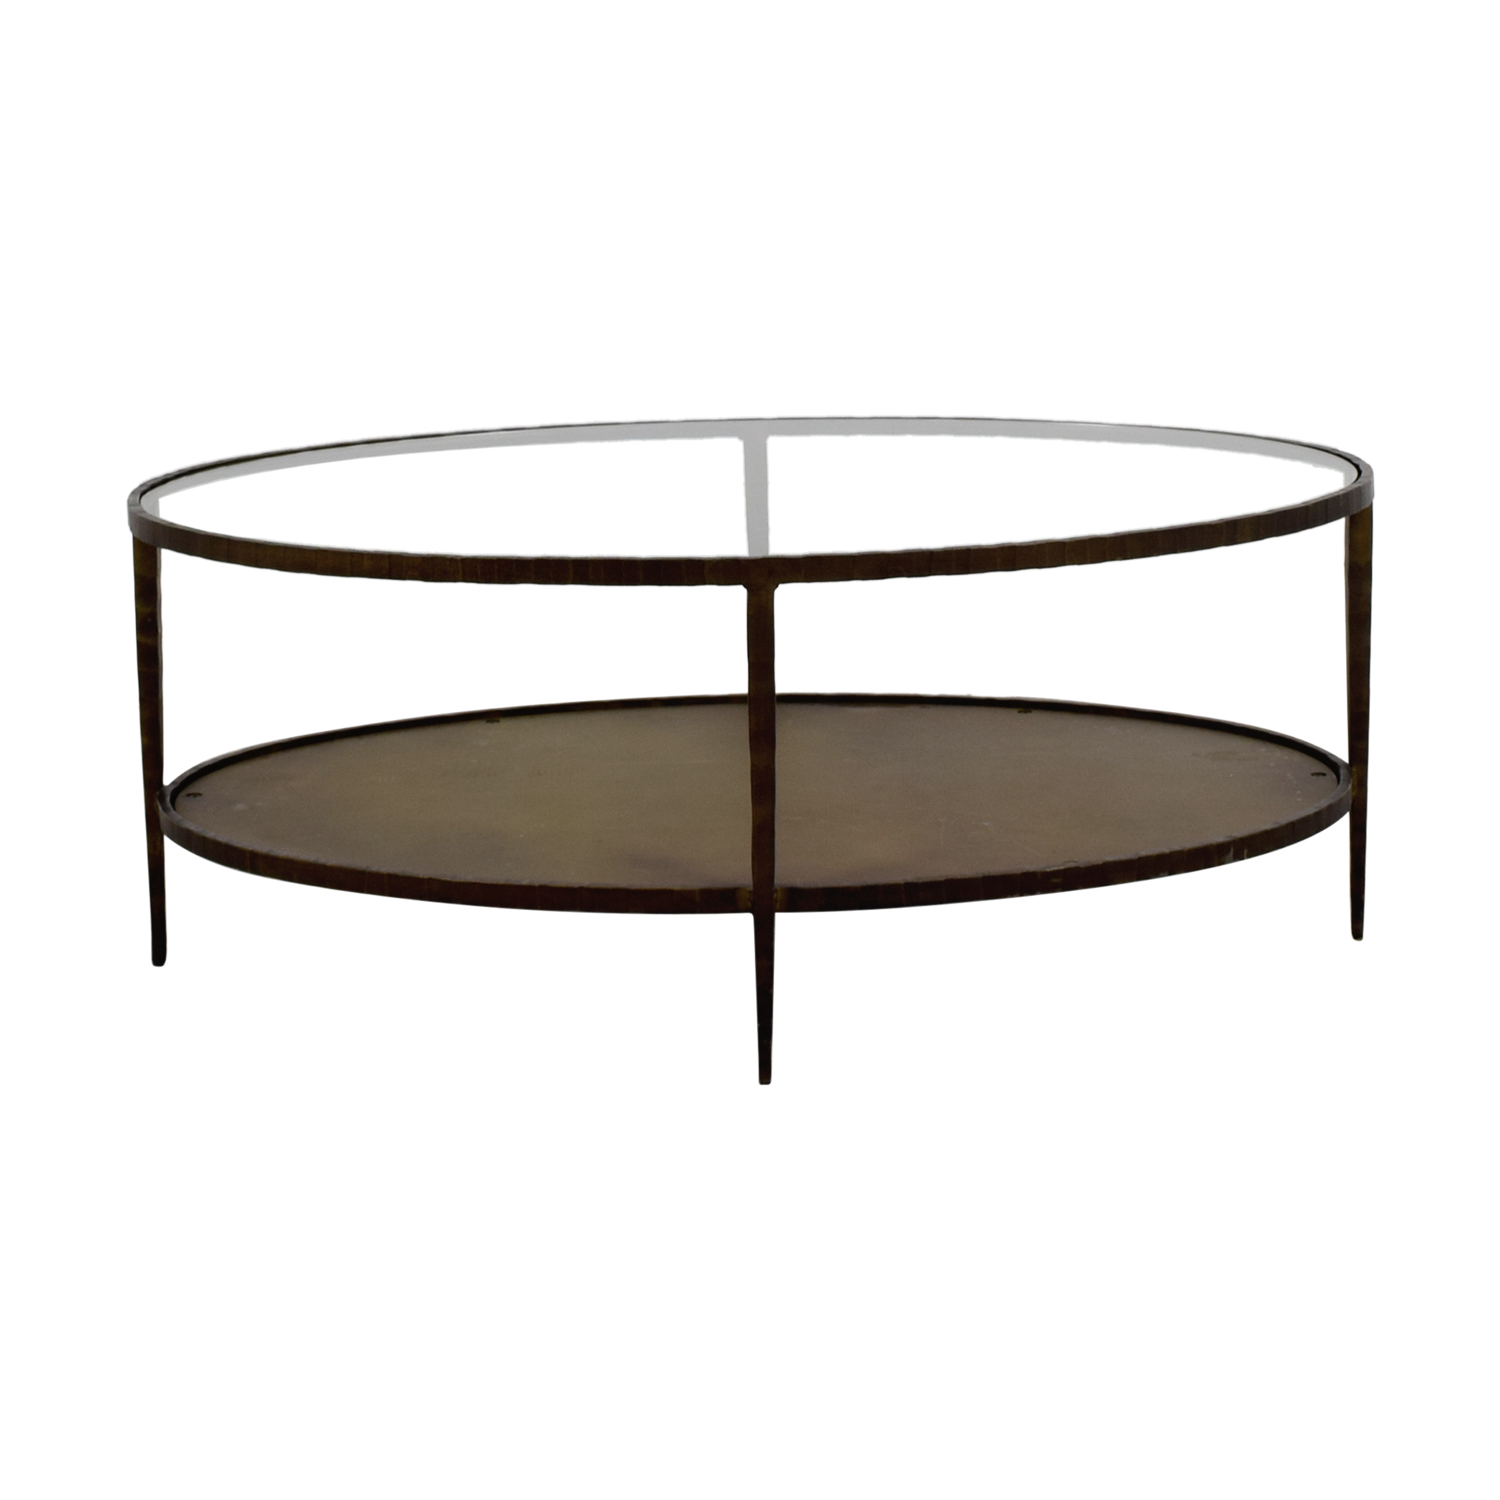 buy Crate & Barrel Clairemont Oval Coffee Table Crate & Barrel